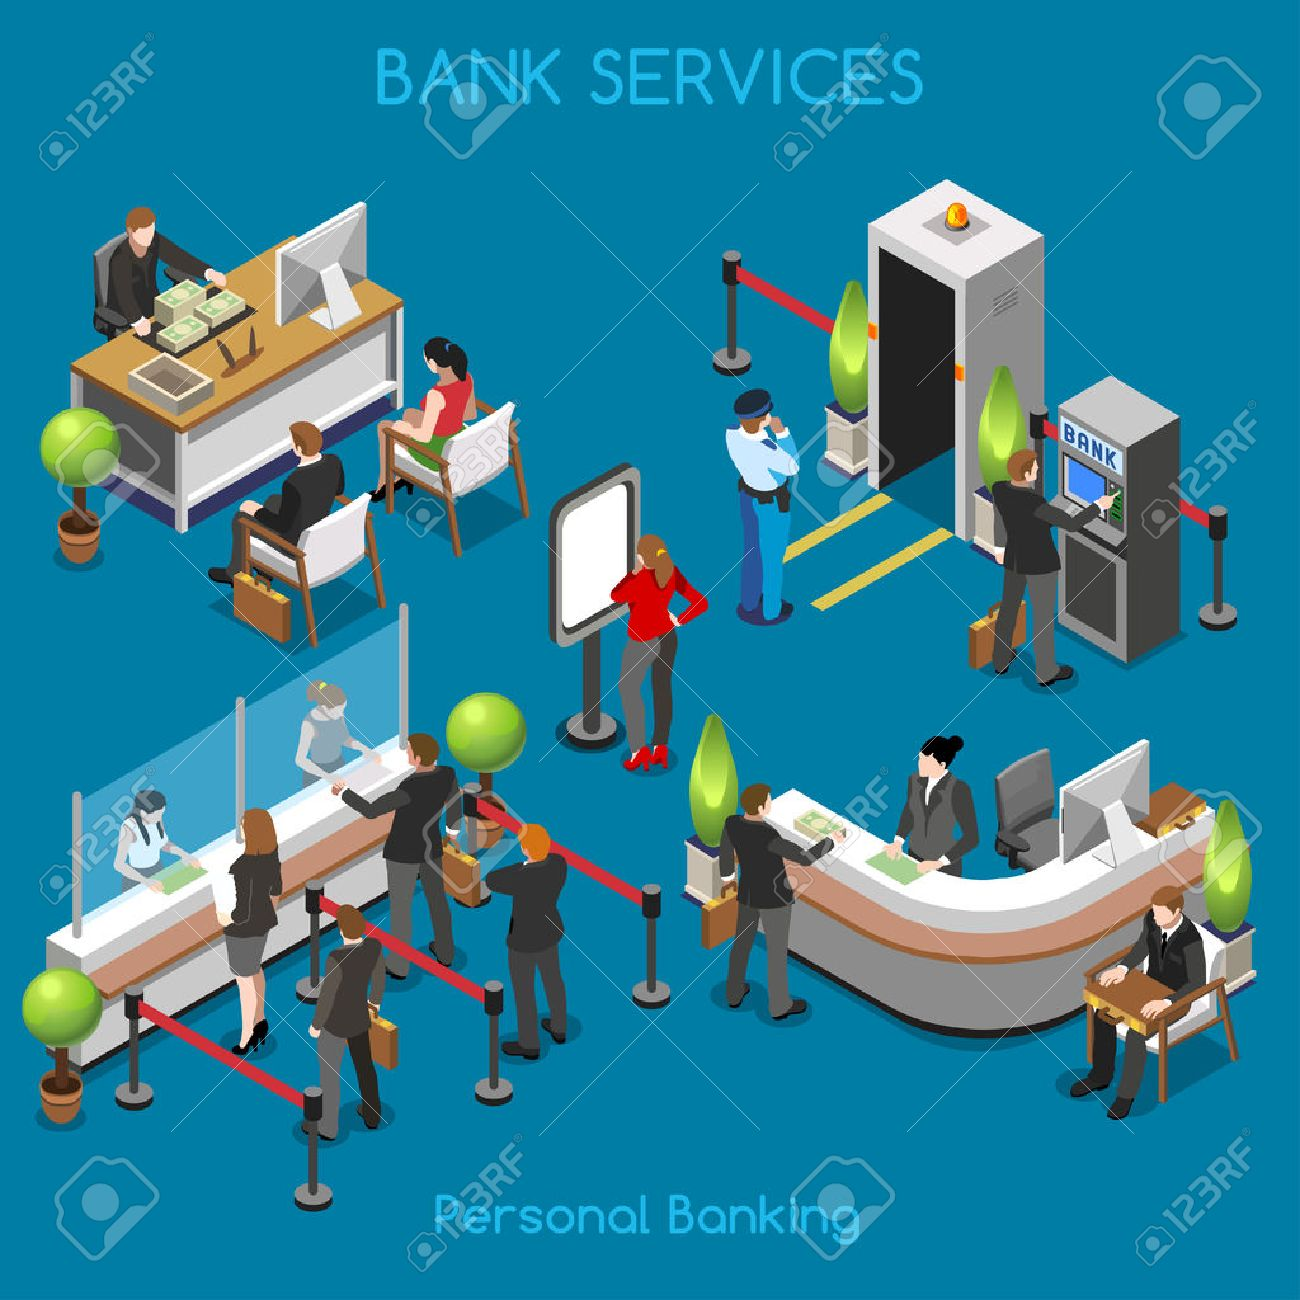 Bank Office Building Floor Interior Detail Elements. Interacting People Unique Isometric Realistic Poses. NEW bright palette 3D Flat Vector Isometric Set. Counter vault cashdesk currency exchange - 44413186